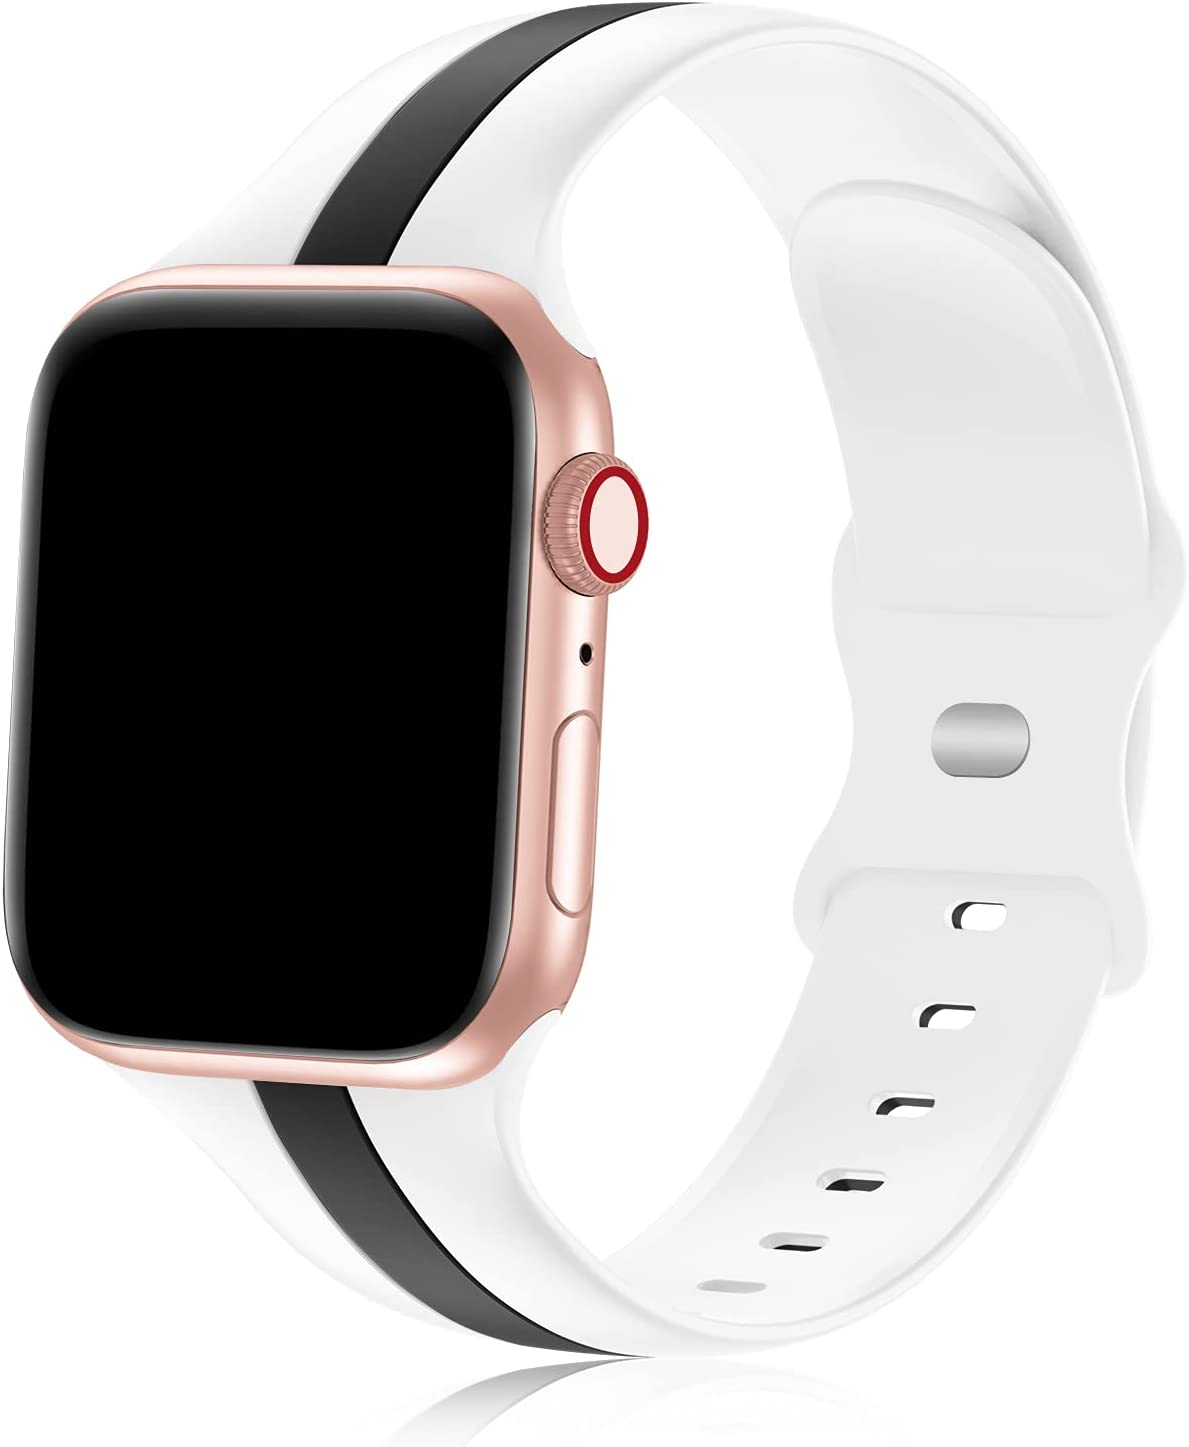 iWabcertoo Designer Sport Bands Compatible with Apple Watch Bands 42mm 44mm 45mm Women and Men,Soft Silicone Replacement Strap Bands for iWatch Series 7 6 5 4 3 2 1 SE Black White